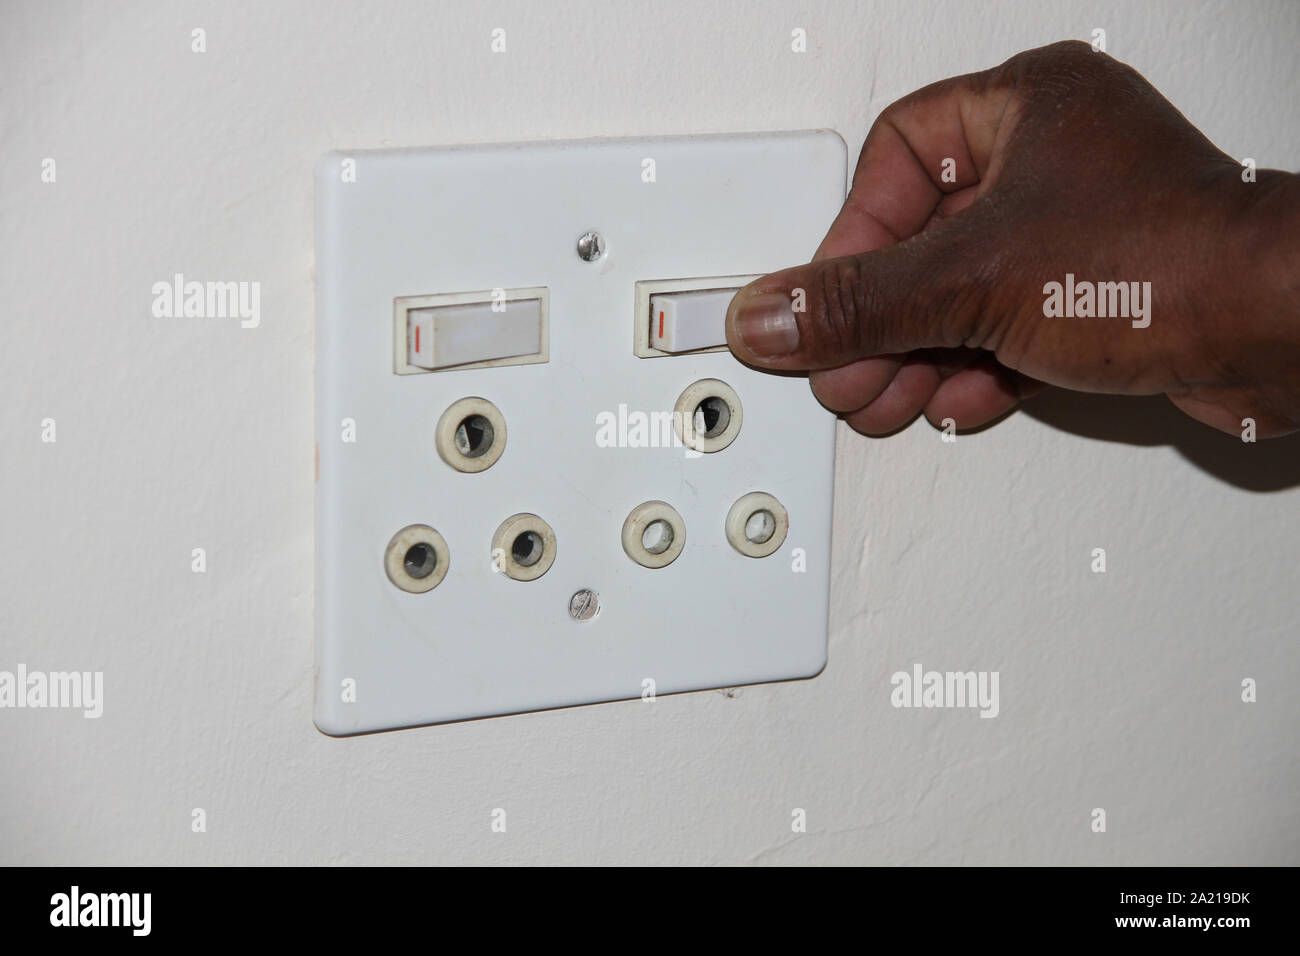 Close-up of hand pressing a white double power socket, South Africa. Stock Photo